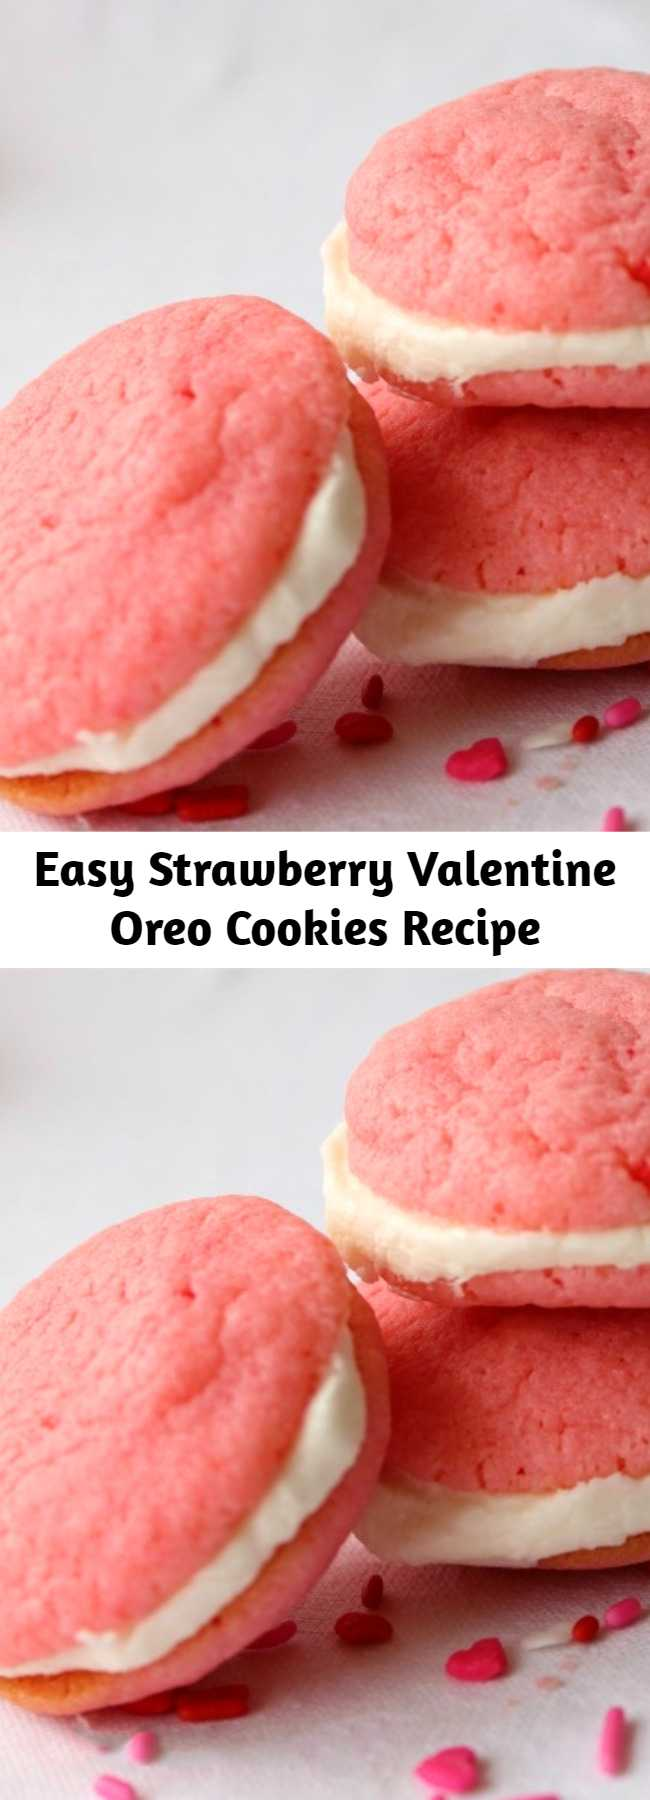 These Strawberry Valentine Oreo Cookies are easy to make and full of delicious strawberry flavor. You are going to love these yummy and simple cookies.